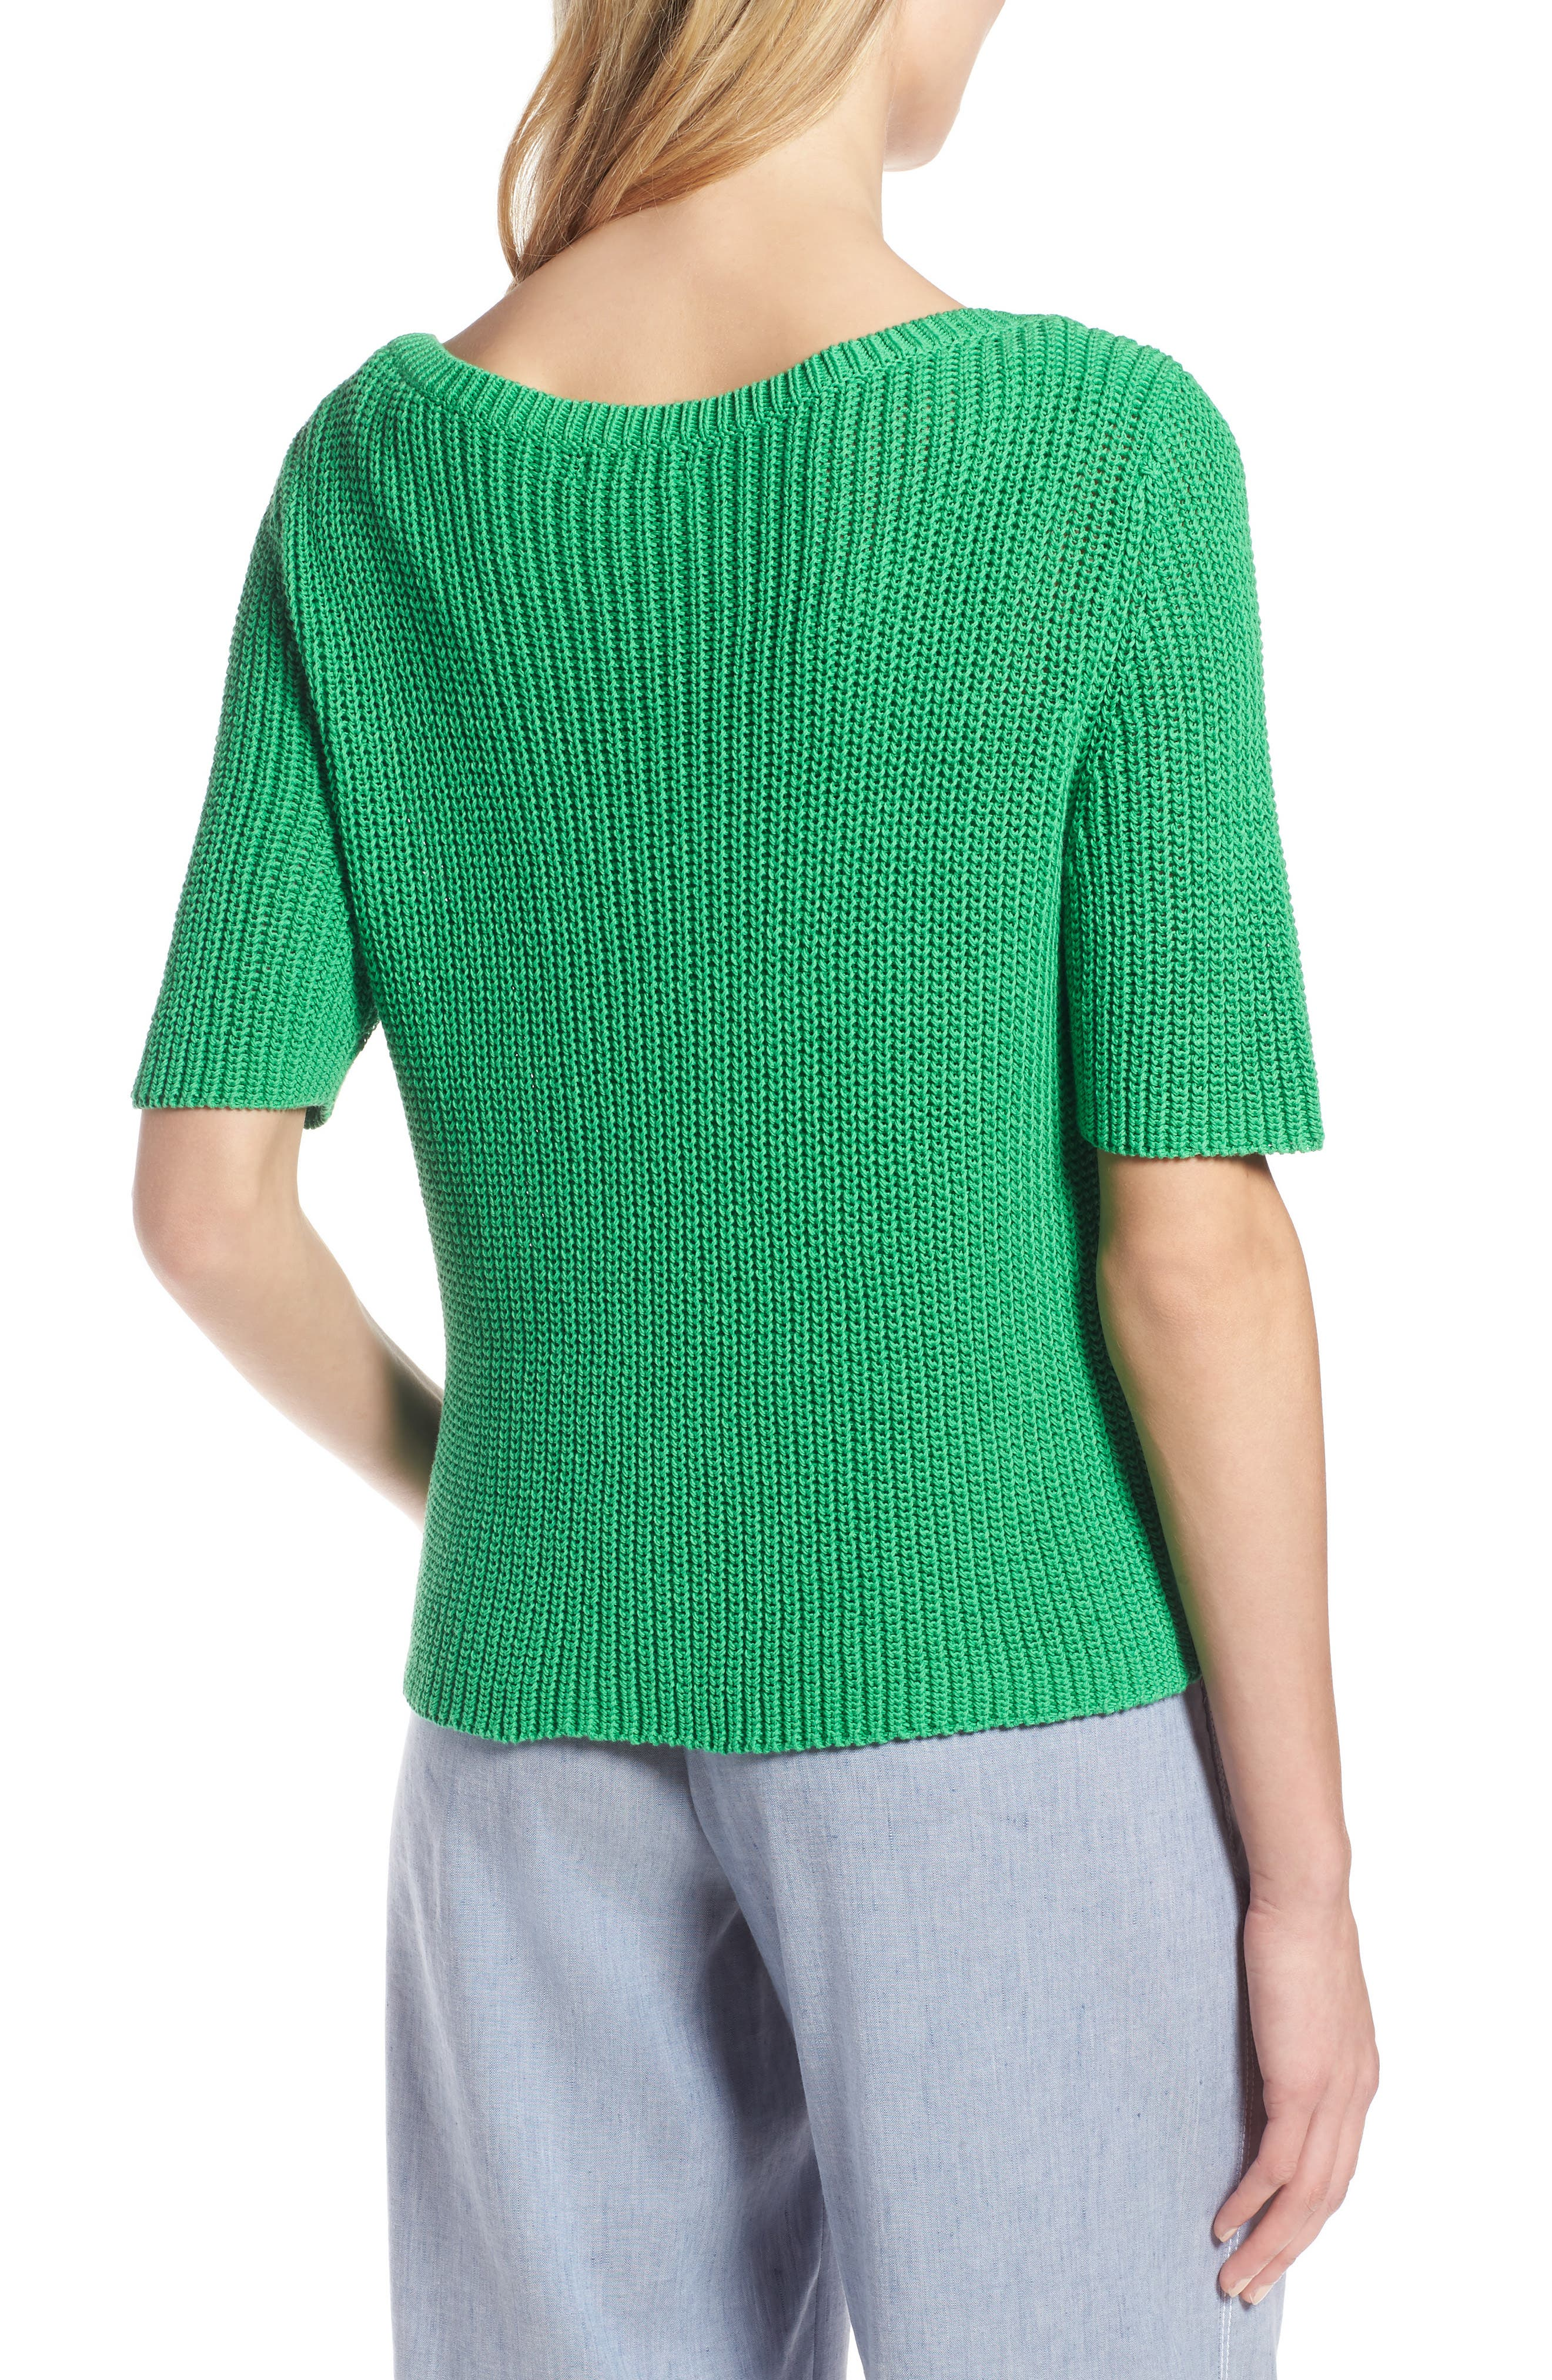 Shaker Stitch Cotton Sweater,                             Alternate thumbnail 2, color,                             330